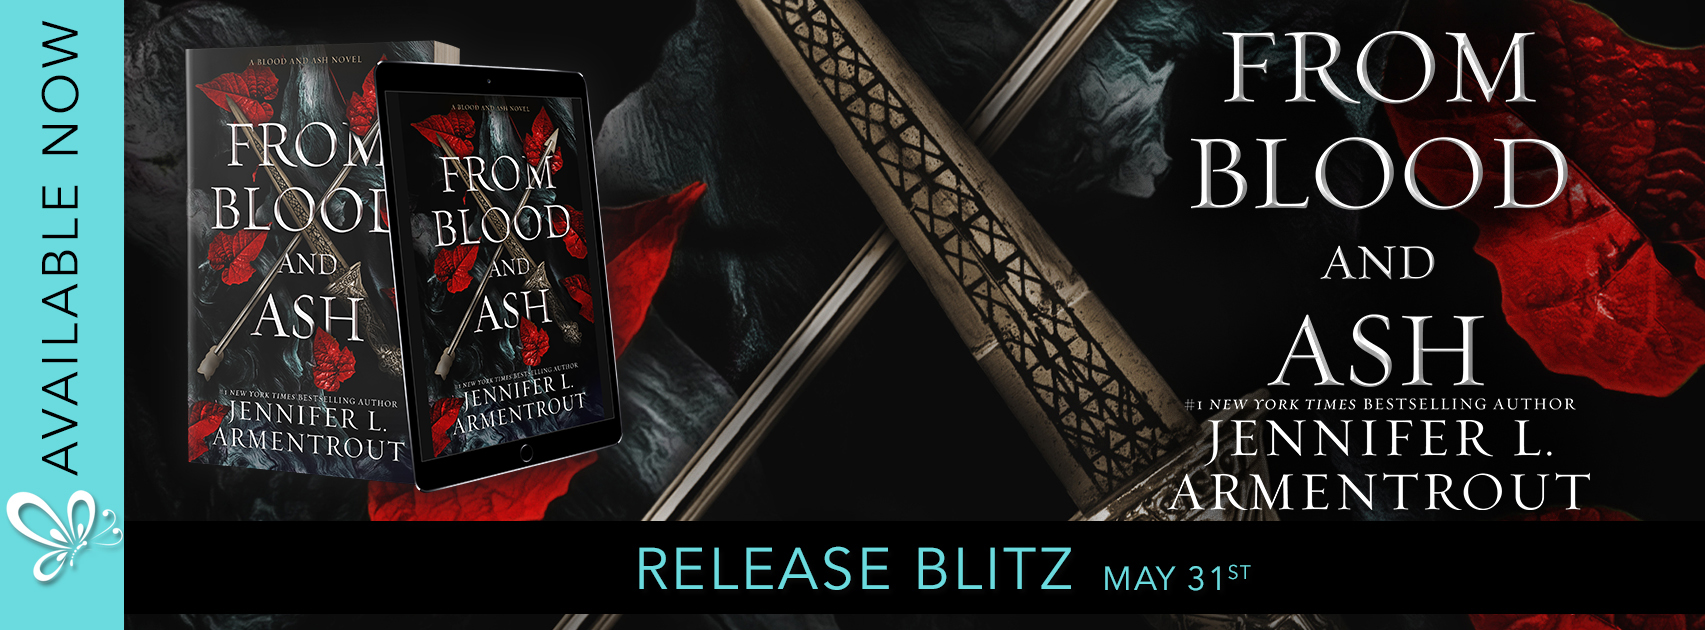 SURPRISE RELEASE…….. From Blood and Ash by Jennifer L. Armentrout